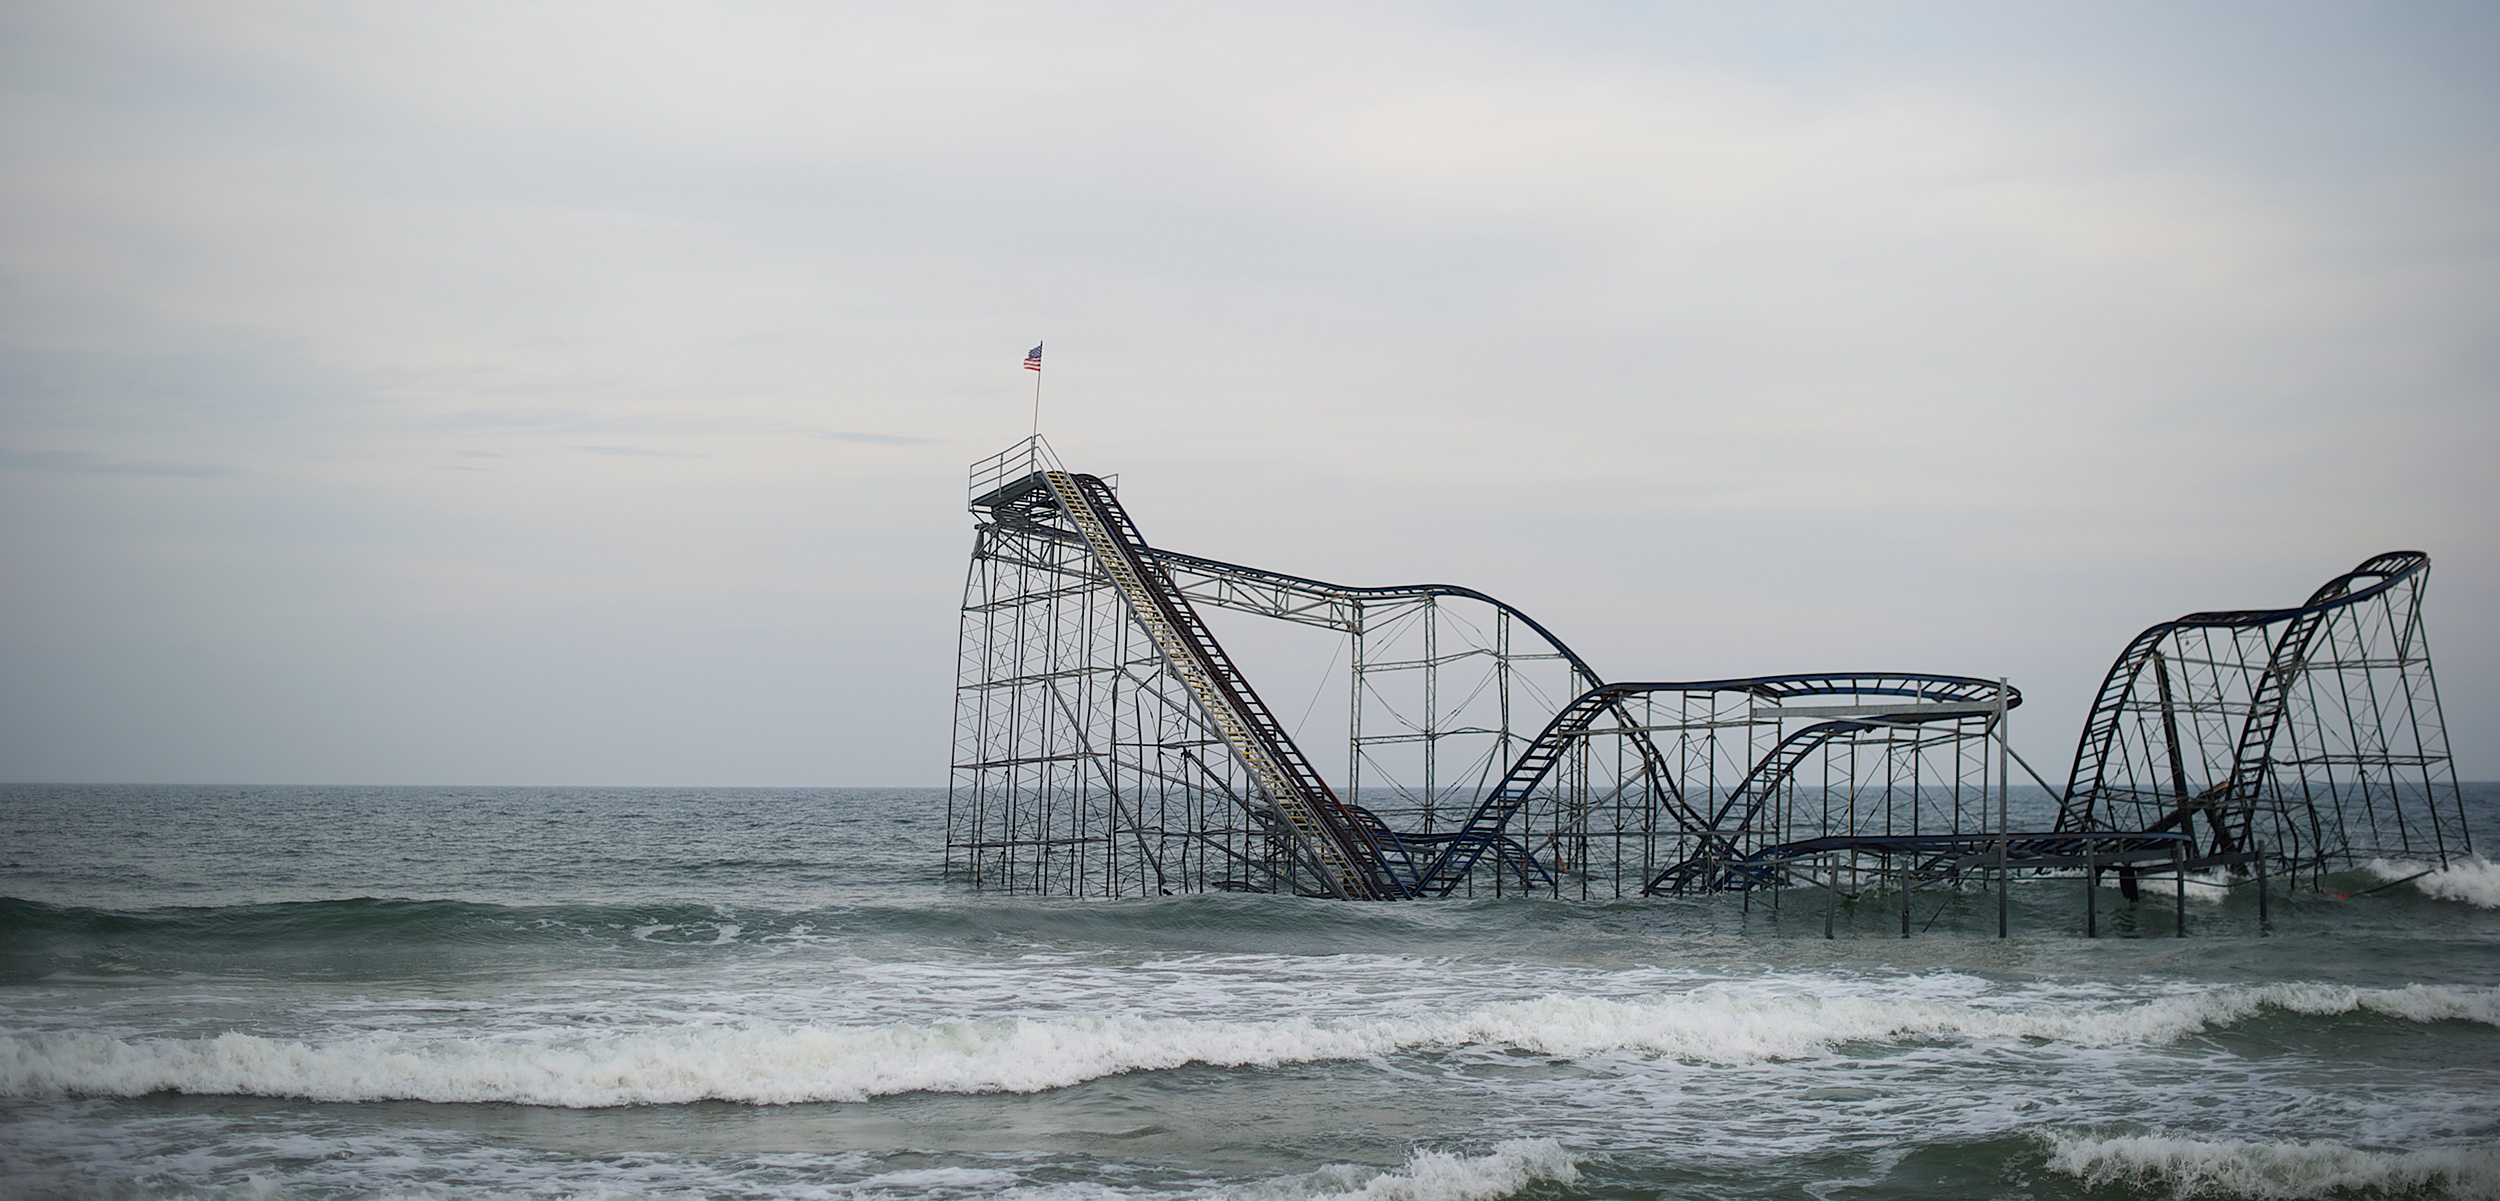 In 2012, Superstorm Sandy hit the New Jersey coastline, smashing homes, businesses, the boardwalk—and Seaside Heights' iconic roller coaster, an enduring symbol of the storm's ferocity. Photo by Mark Makela/Corbis